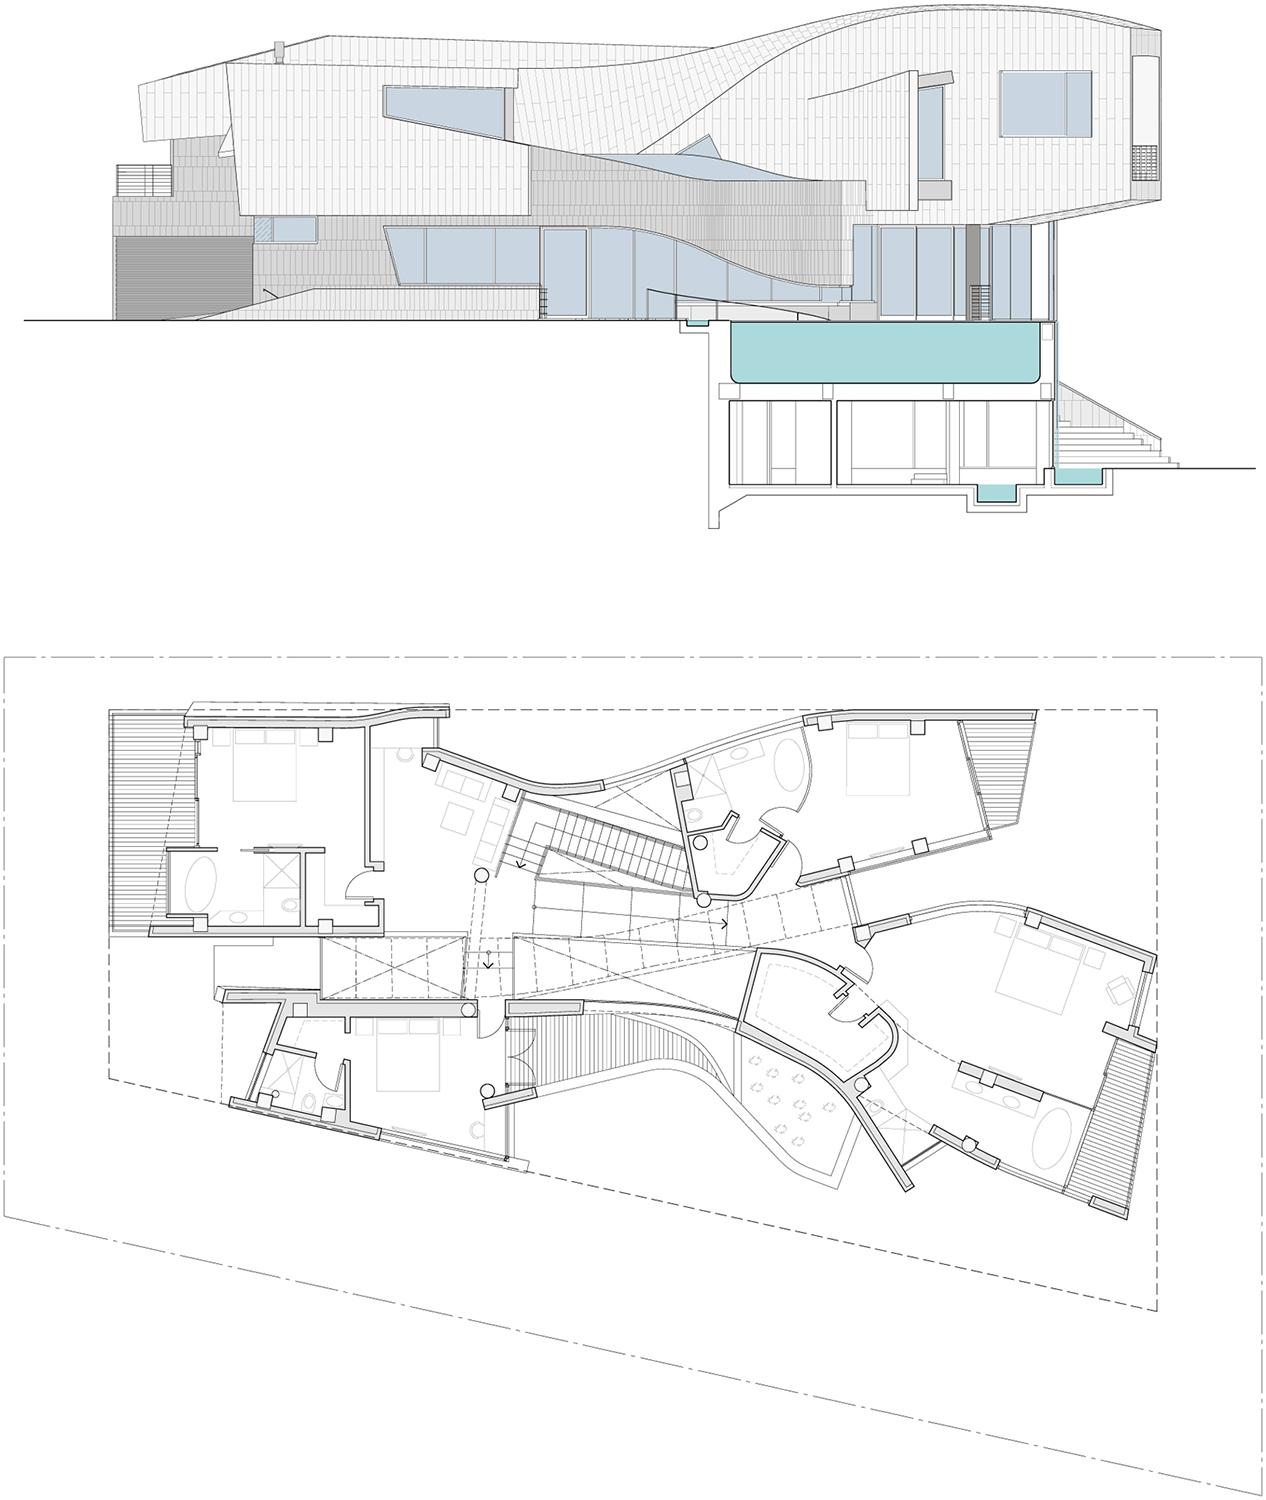 02 Griffin Enright Architects}